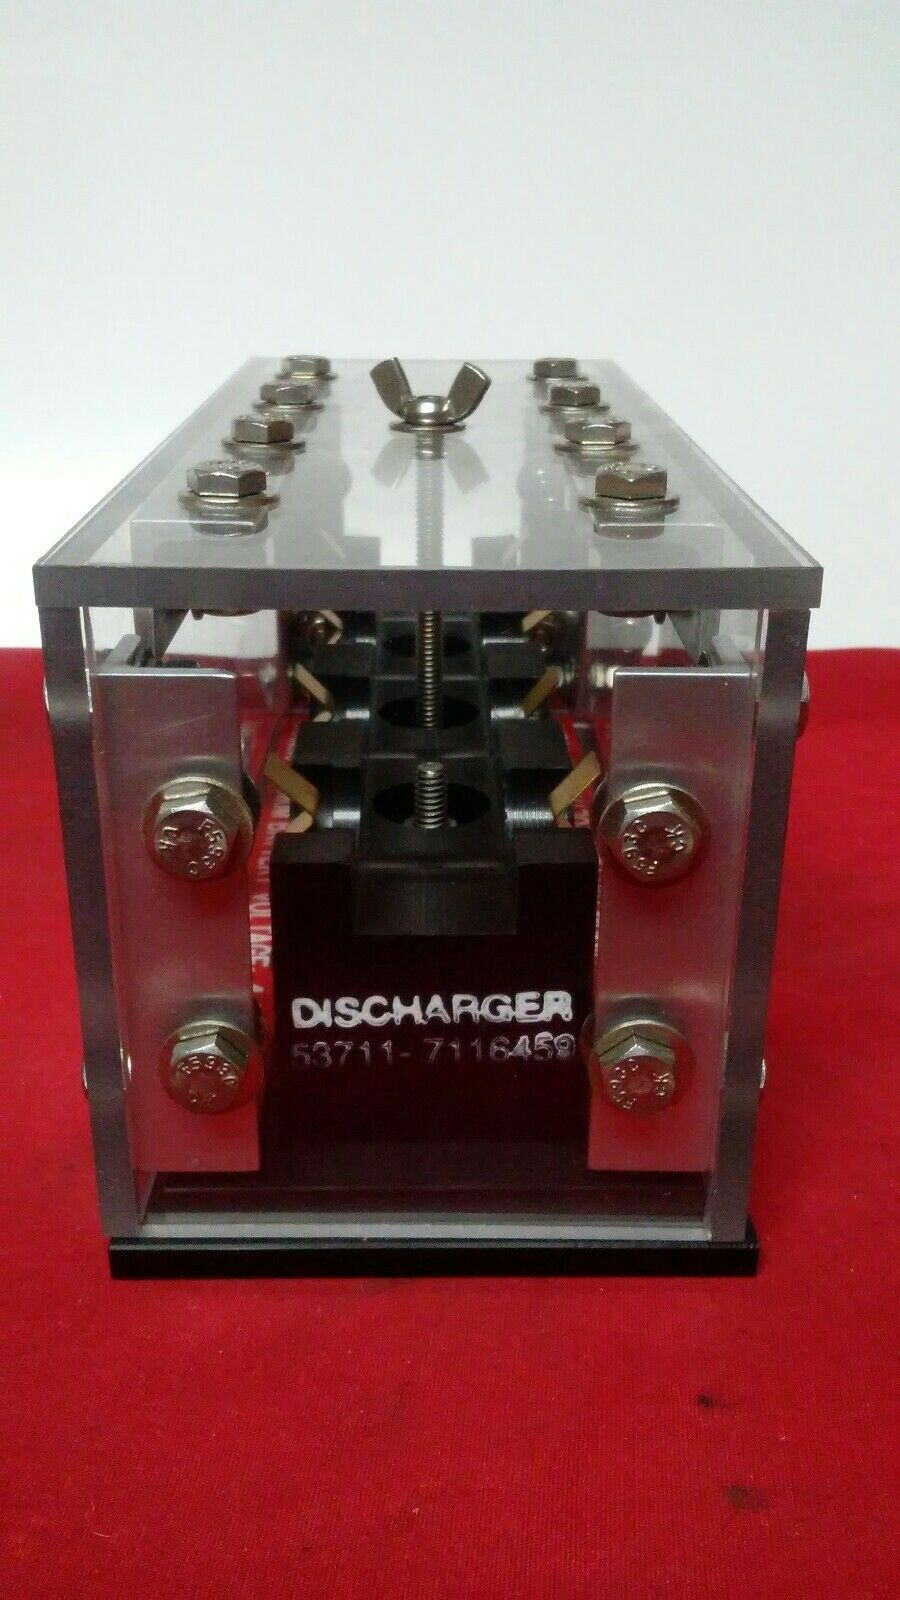 Acoustic Battery Discharger LL7116459                     D 2f0caf